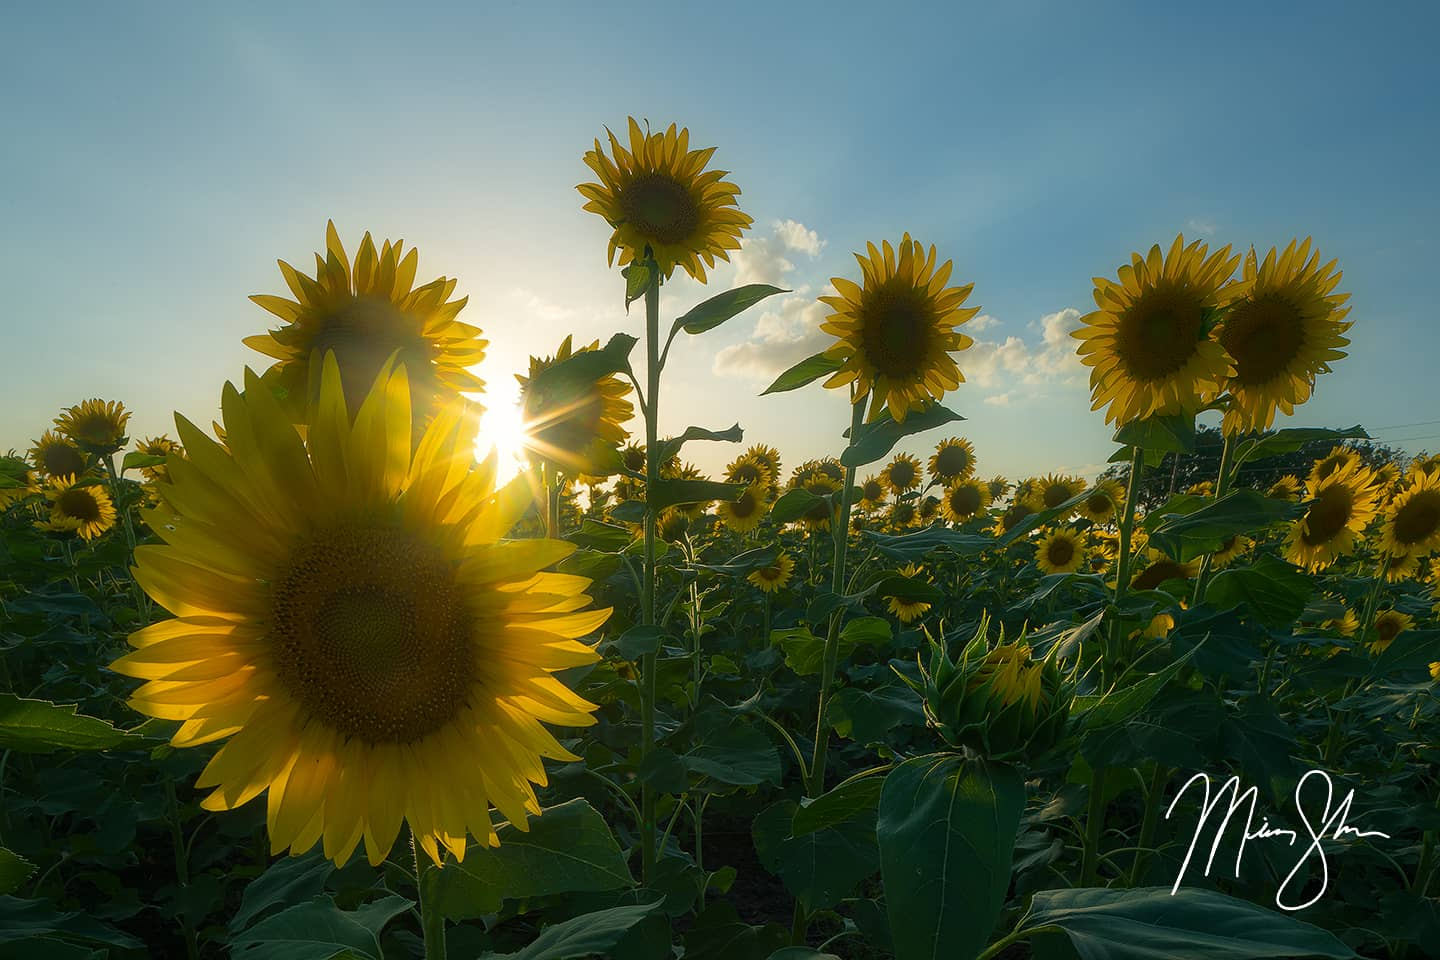 Open edition fine art print of Sunflowers and Sunlight from Mickey Shannon Photography. Location: Haysville, KS